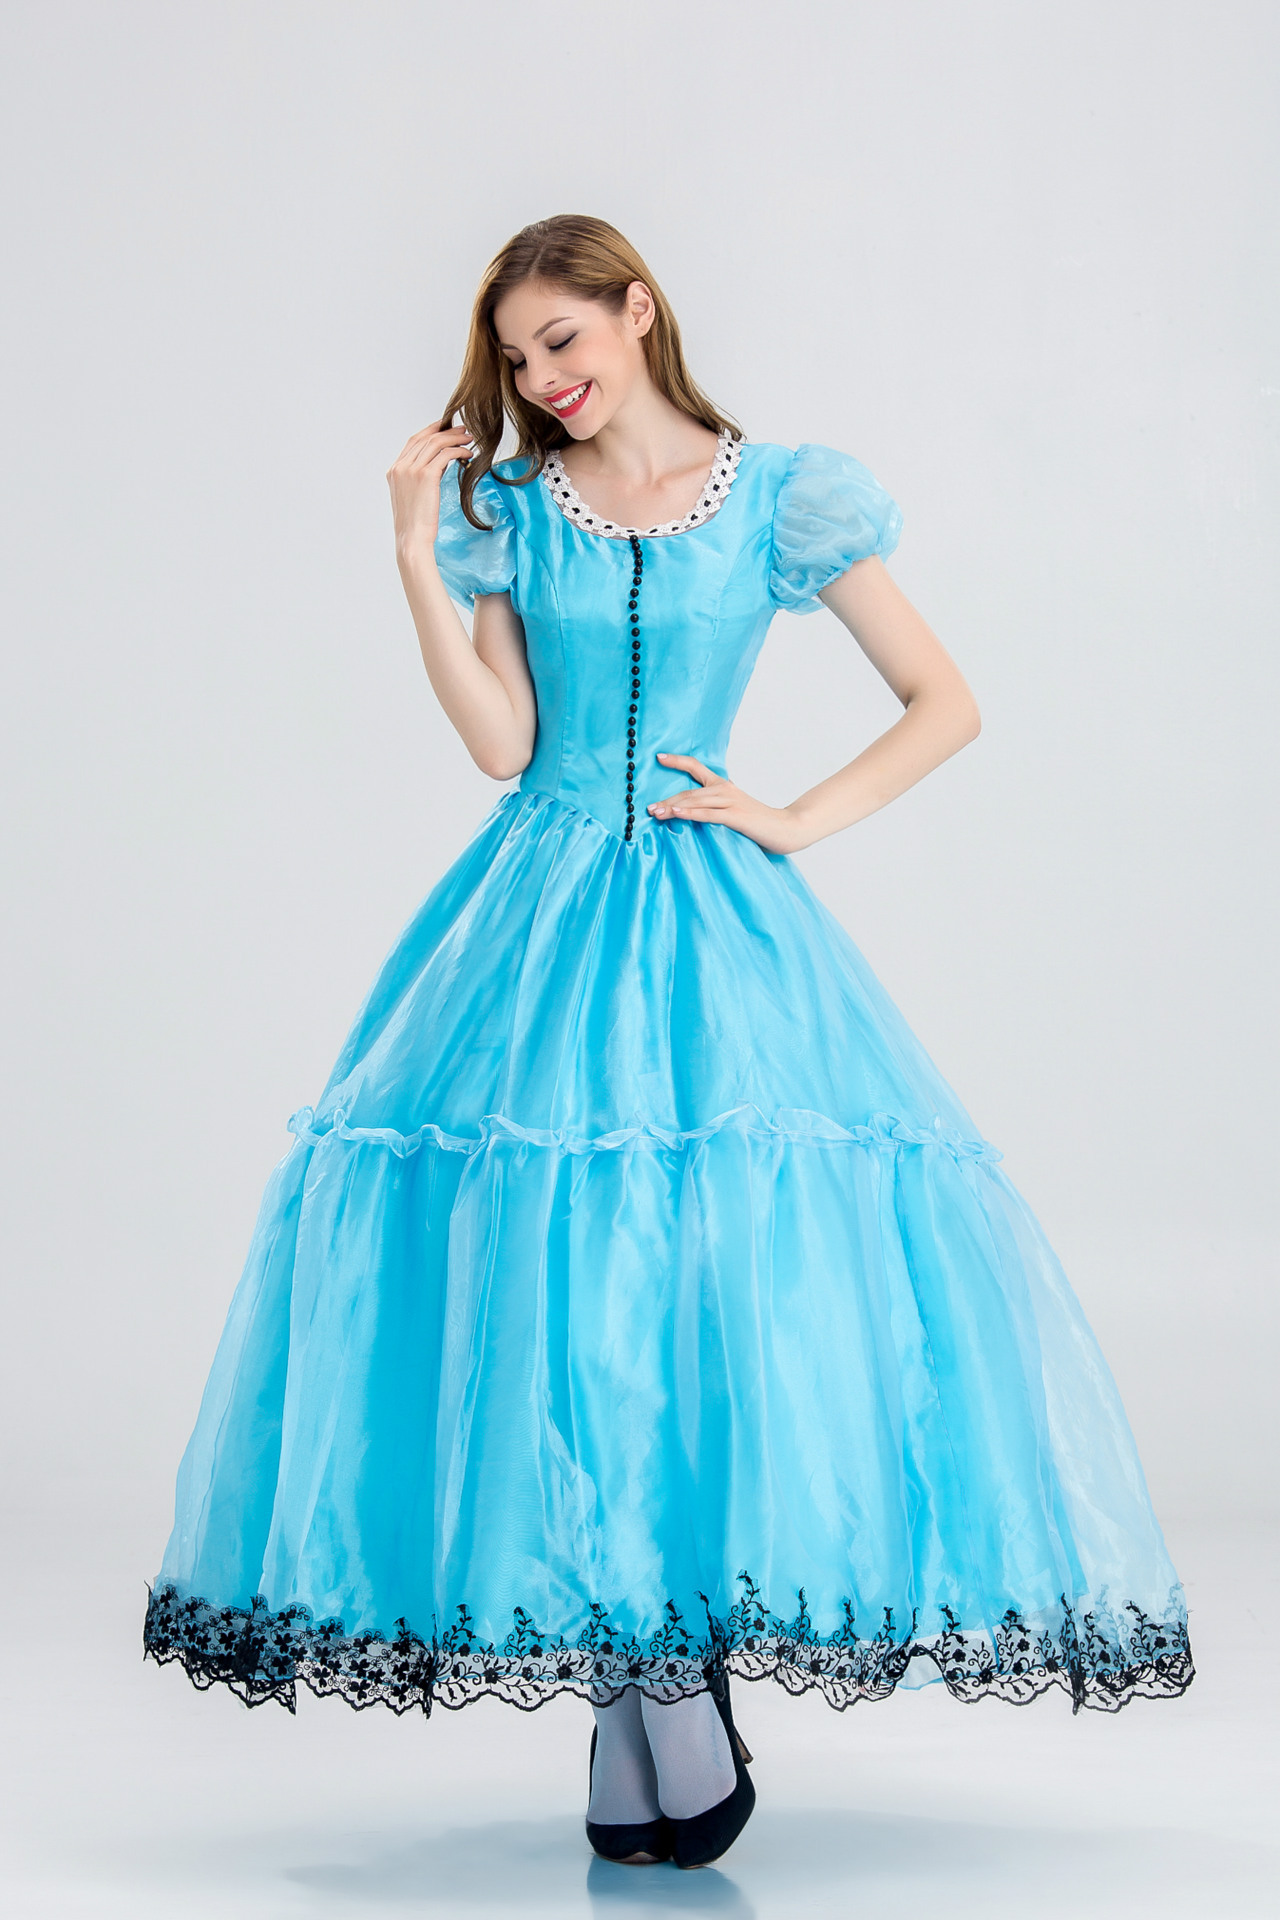 2017 Halloween Cosplay blau Custume für frauen Party Kleid ...